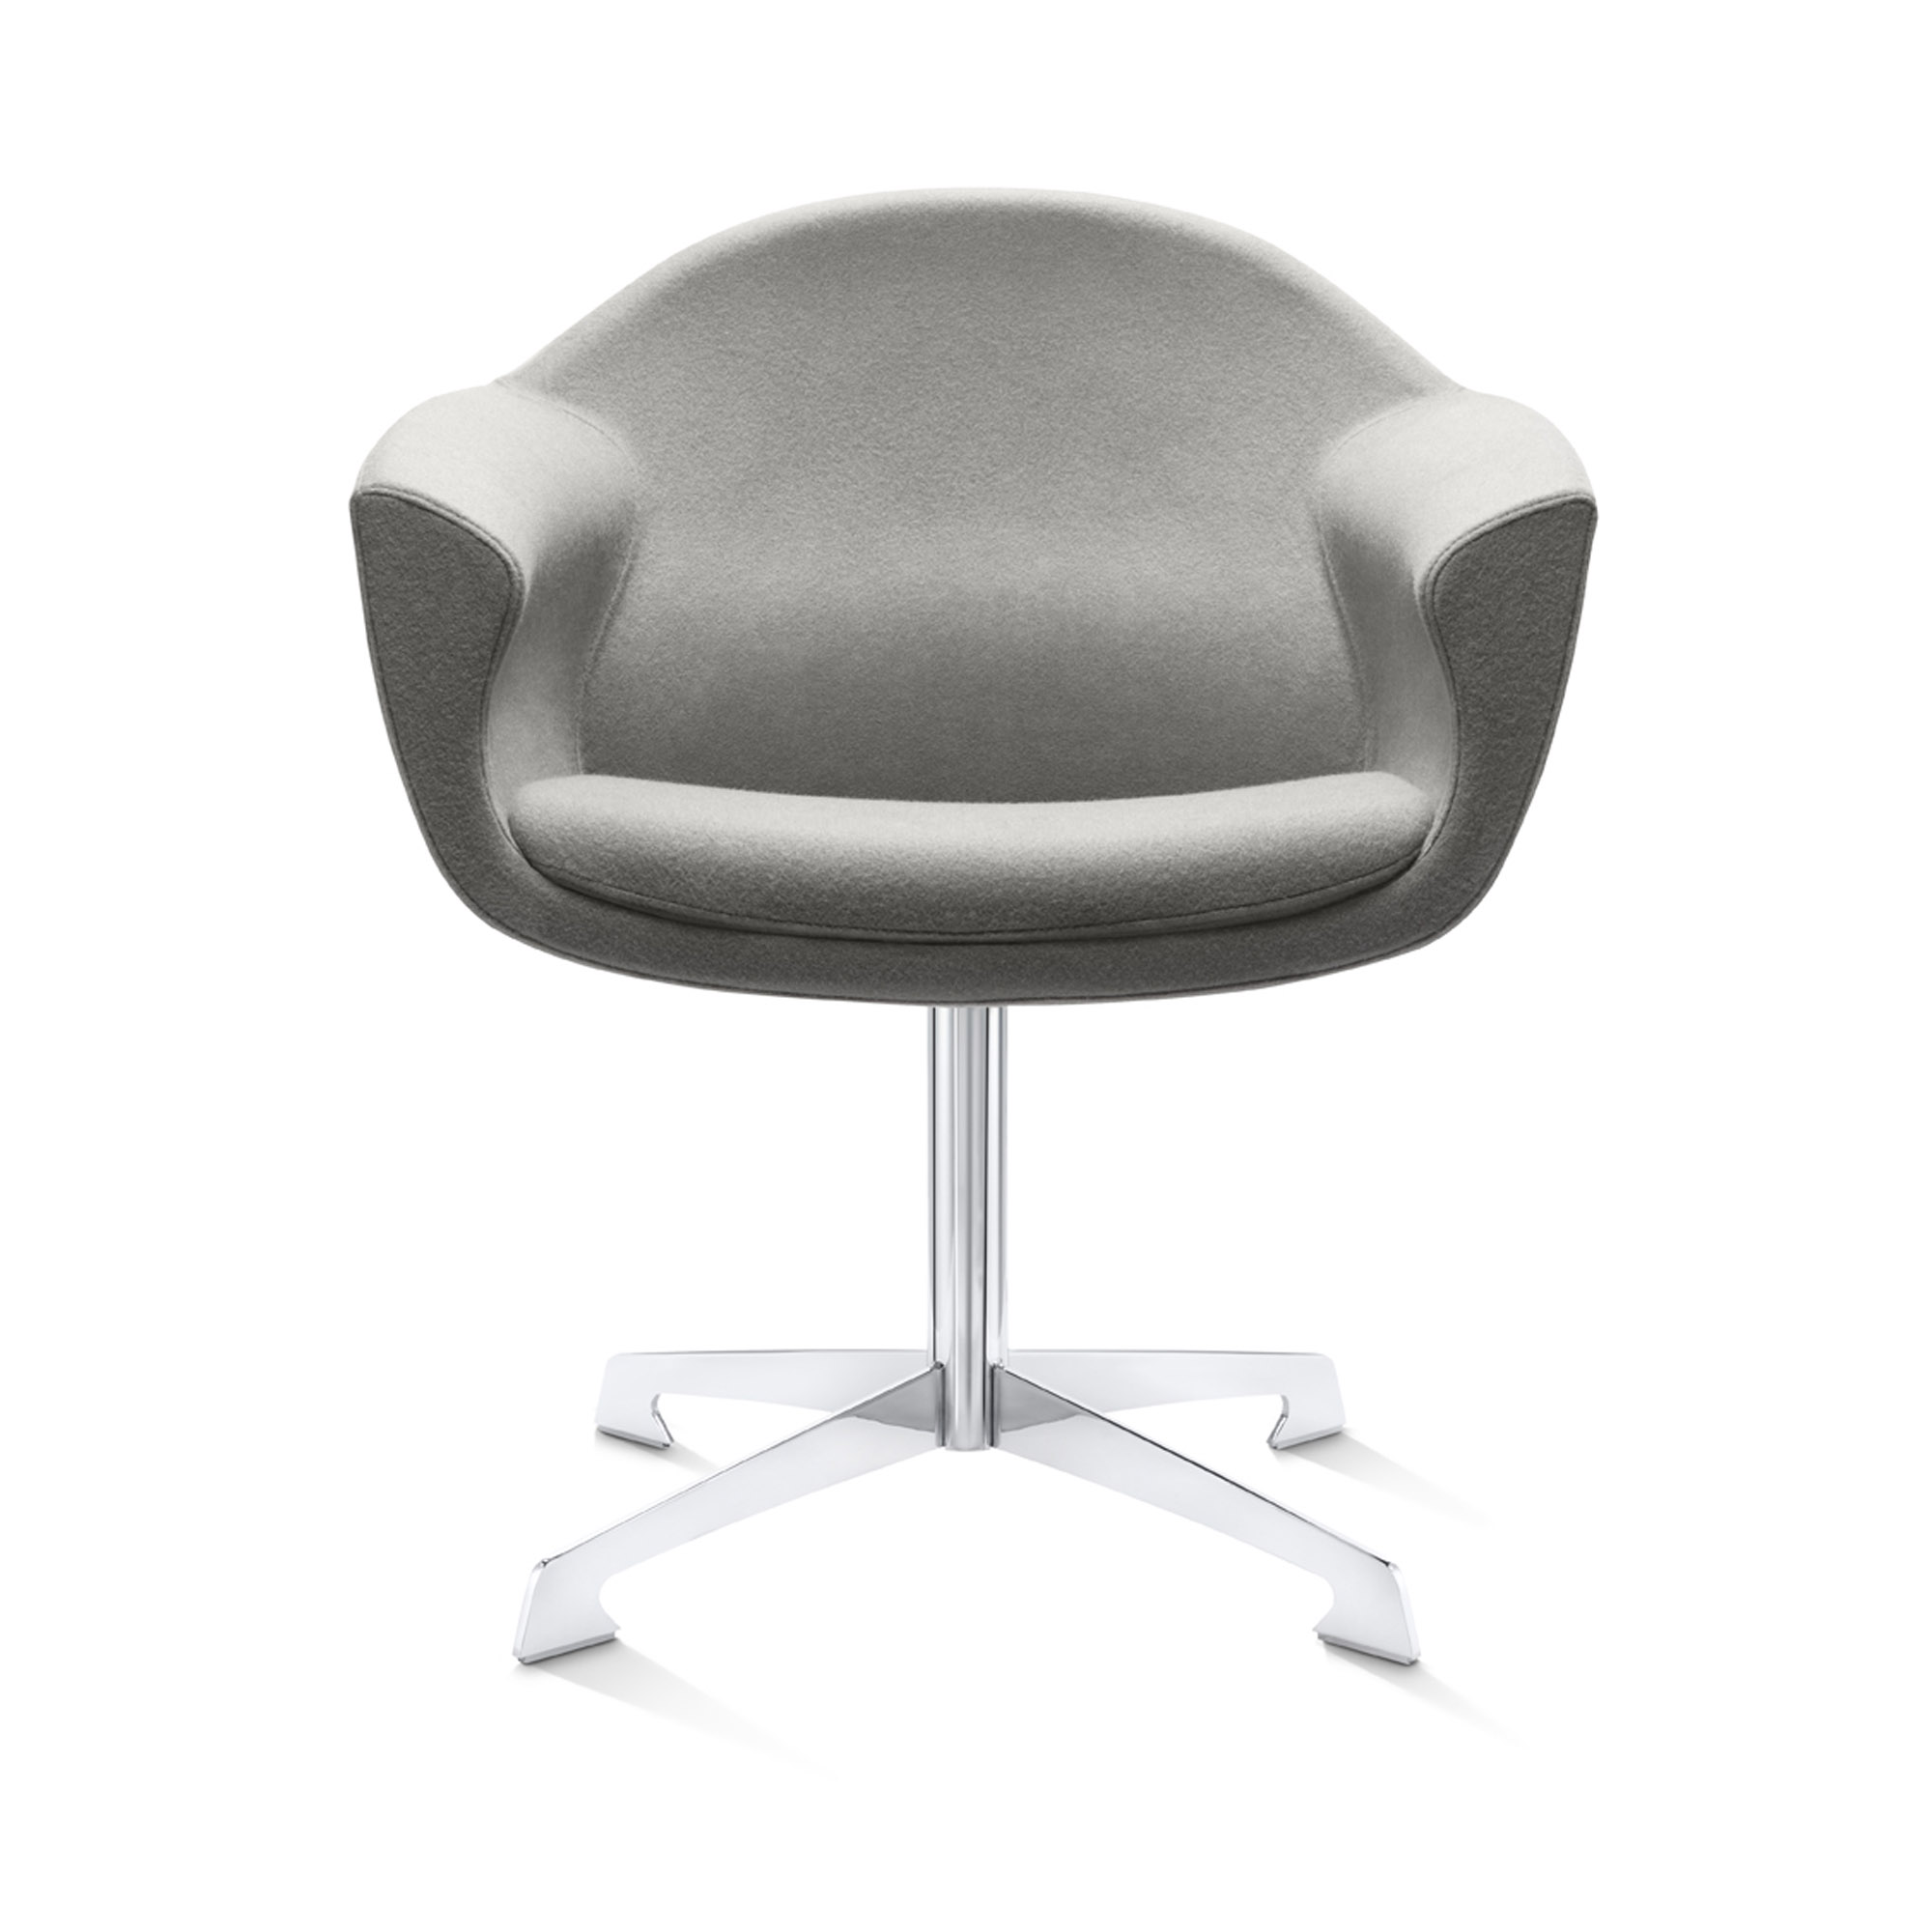 Jones-and-Partners-Mortimer-seating-armchair-front.jpg